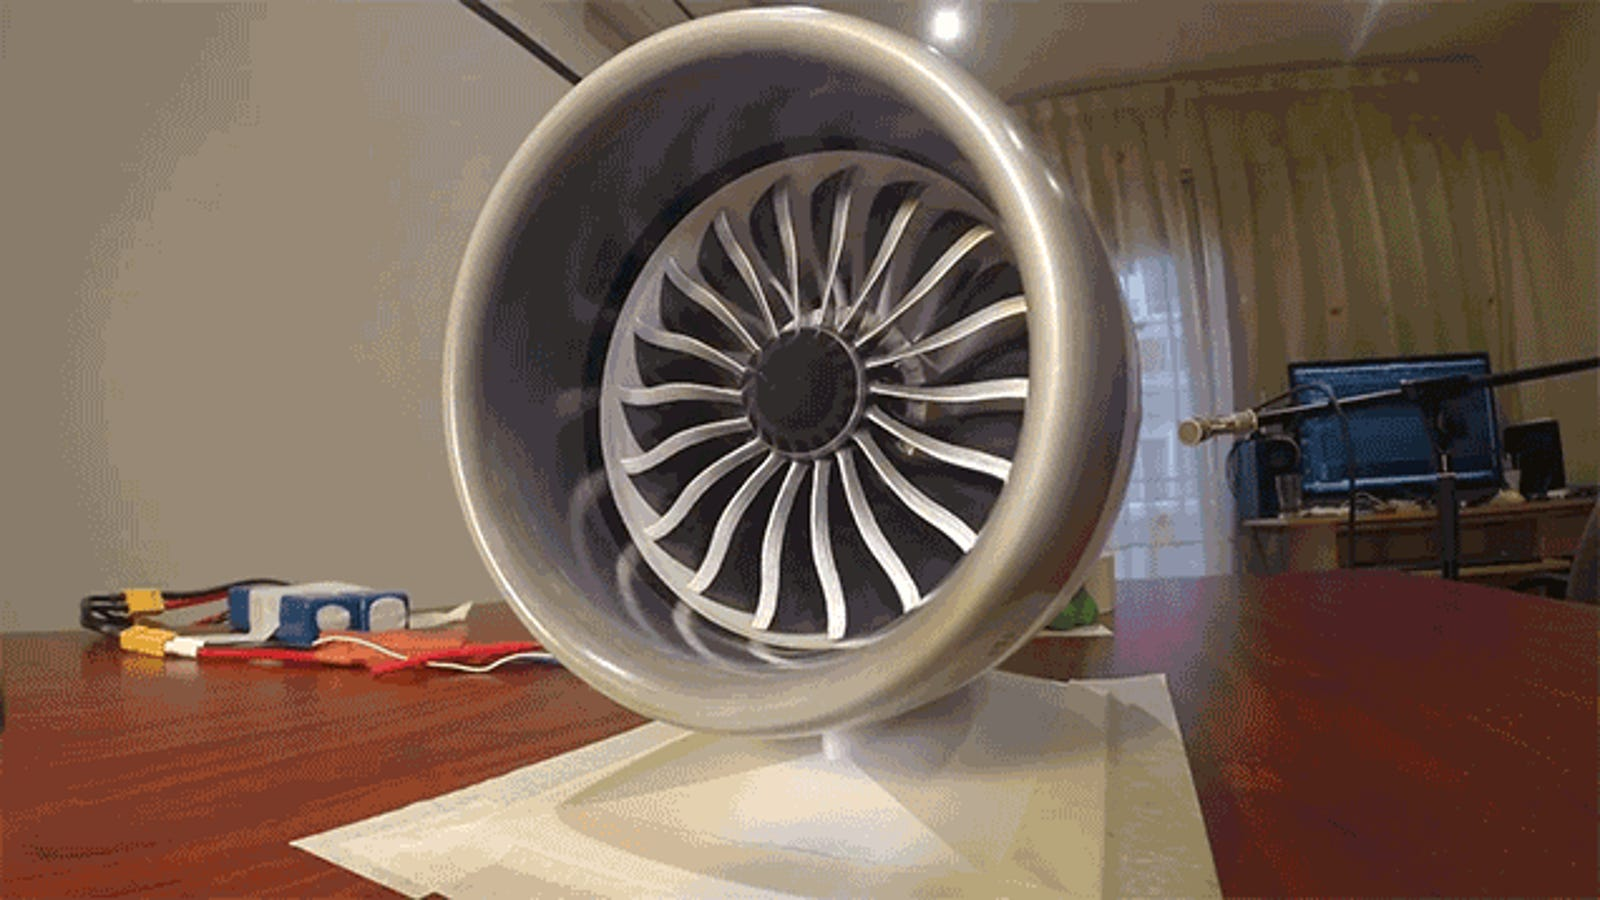 This 3D-Printed Working Model of a 787's Jet Engine Has Impressive